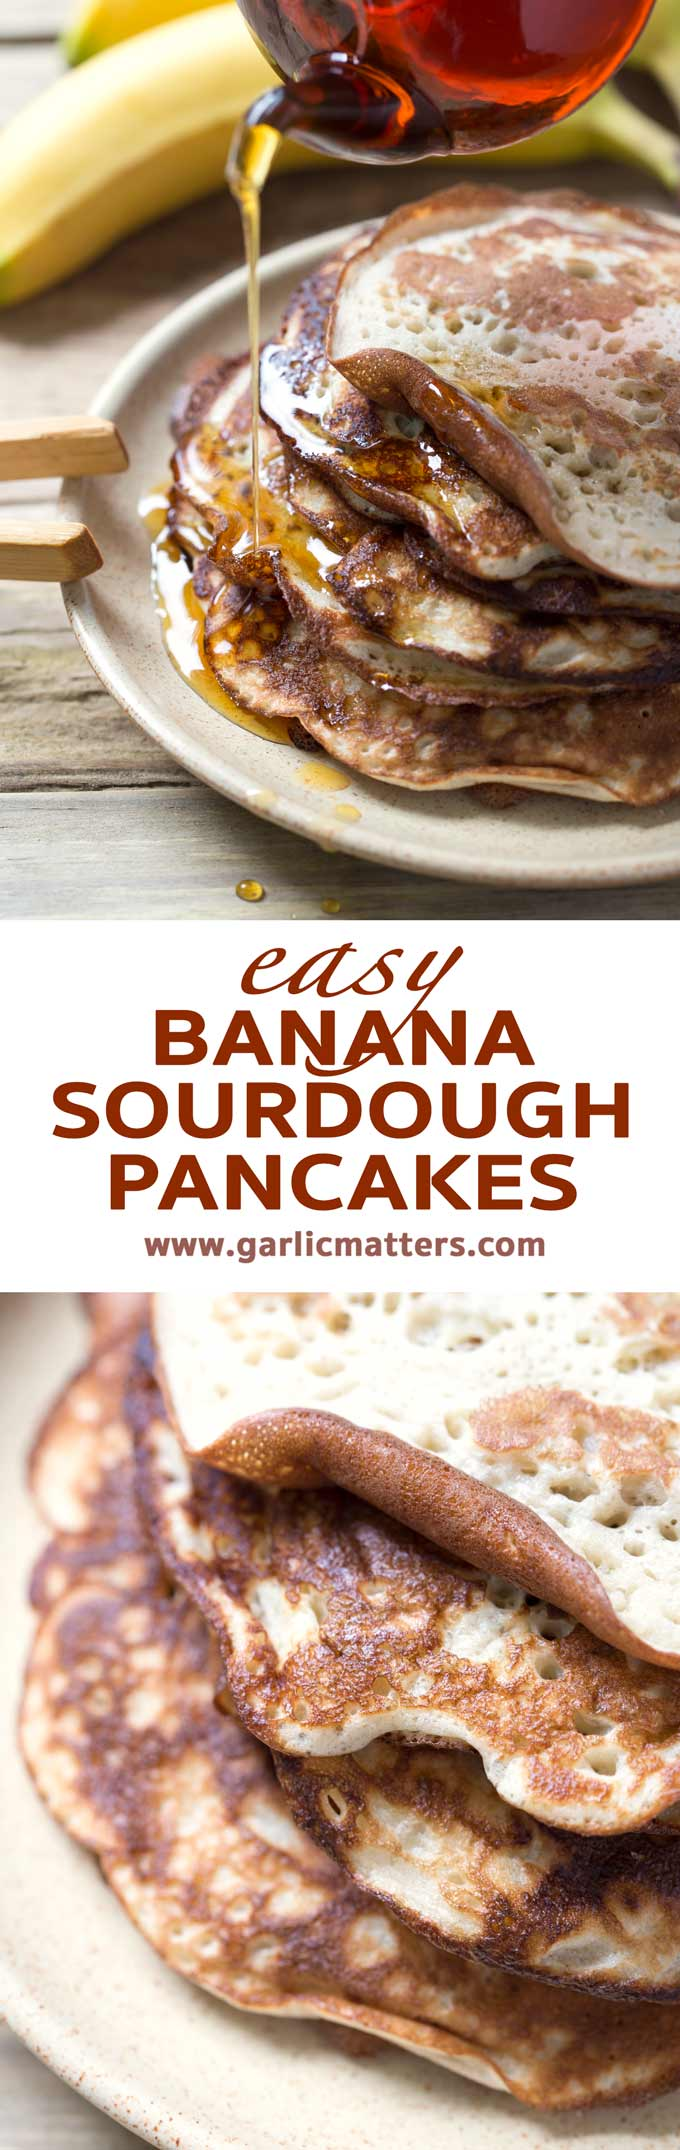 Delicious Banana Sourdough Pancakes are easy to make and also really good for your gut. Add your favourite fruit to make them exactly to your liking.